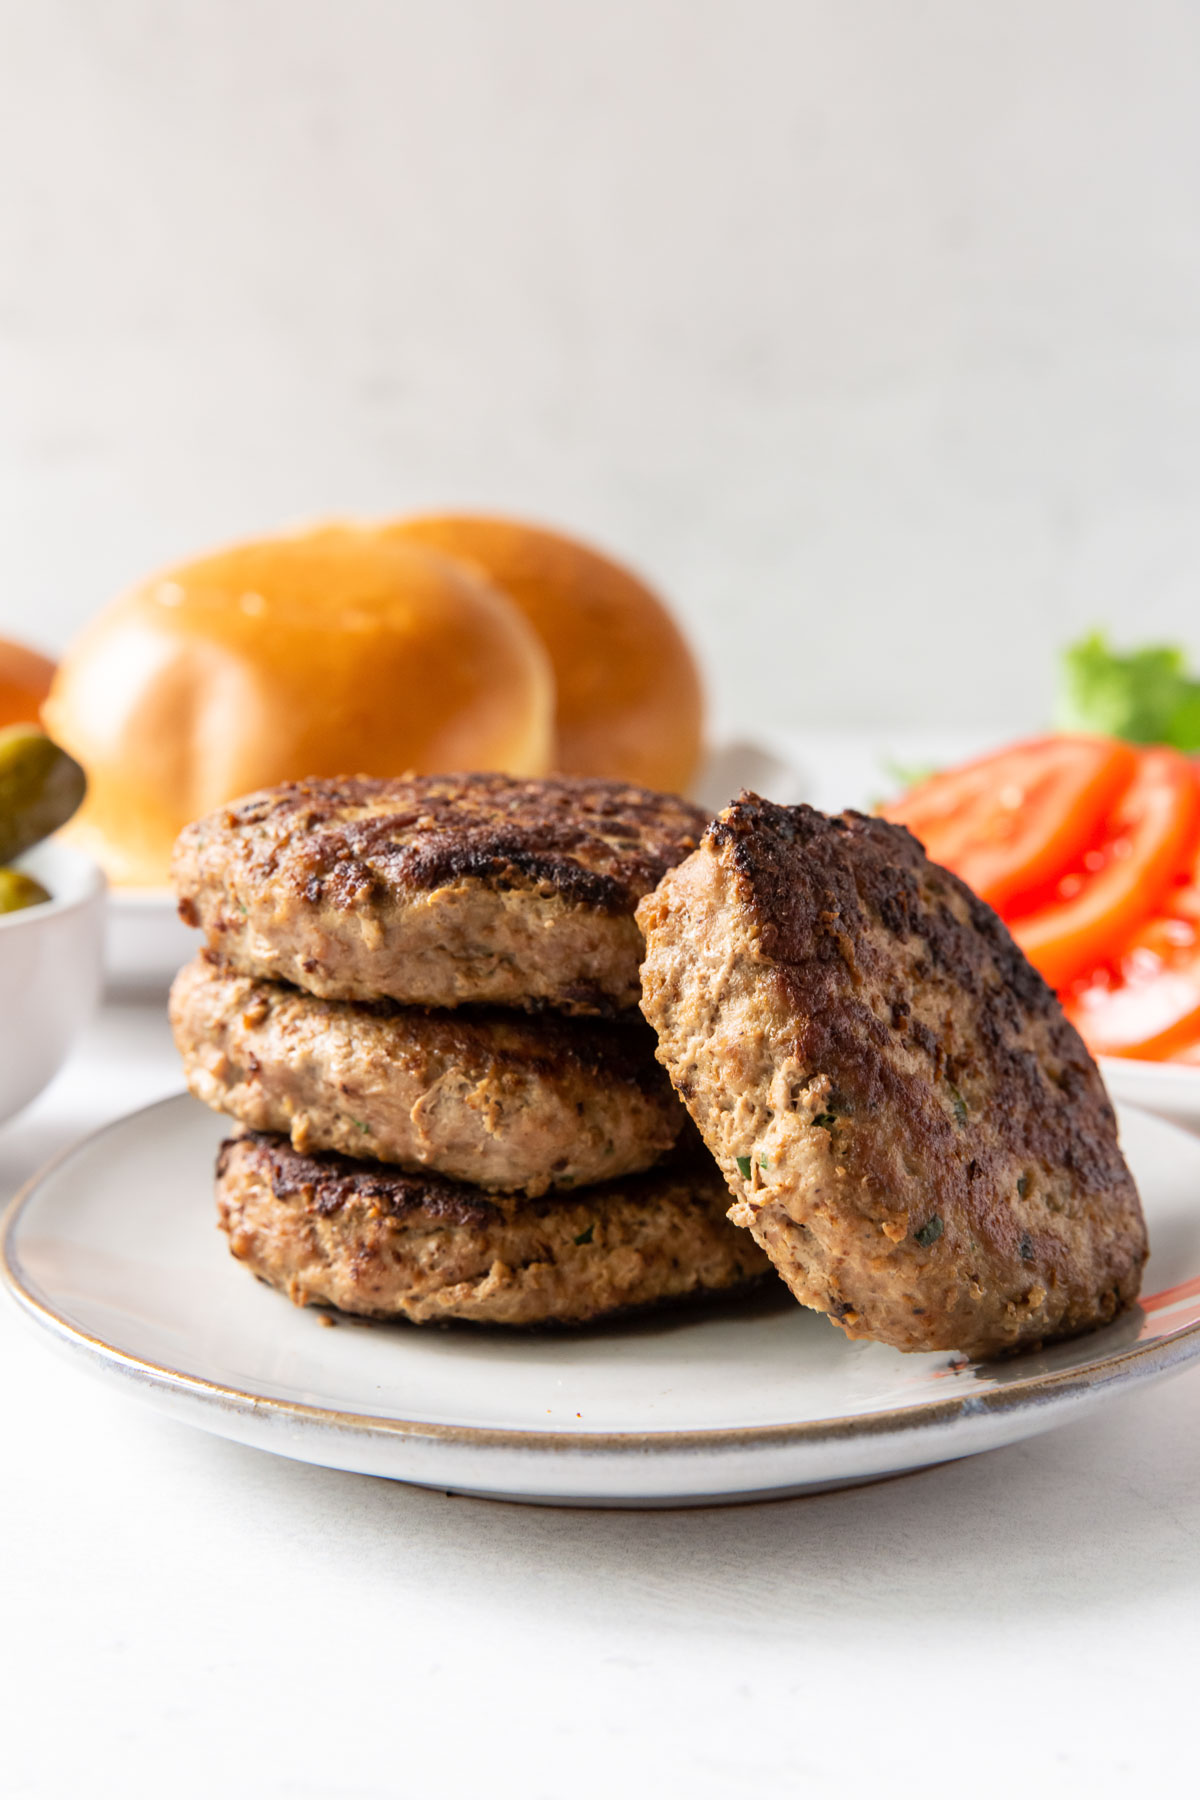 three turkey burgers stacked on a plate with a fourth burger leaning against the stack